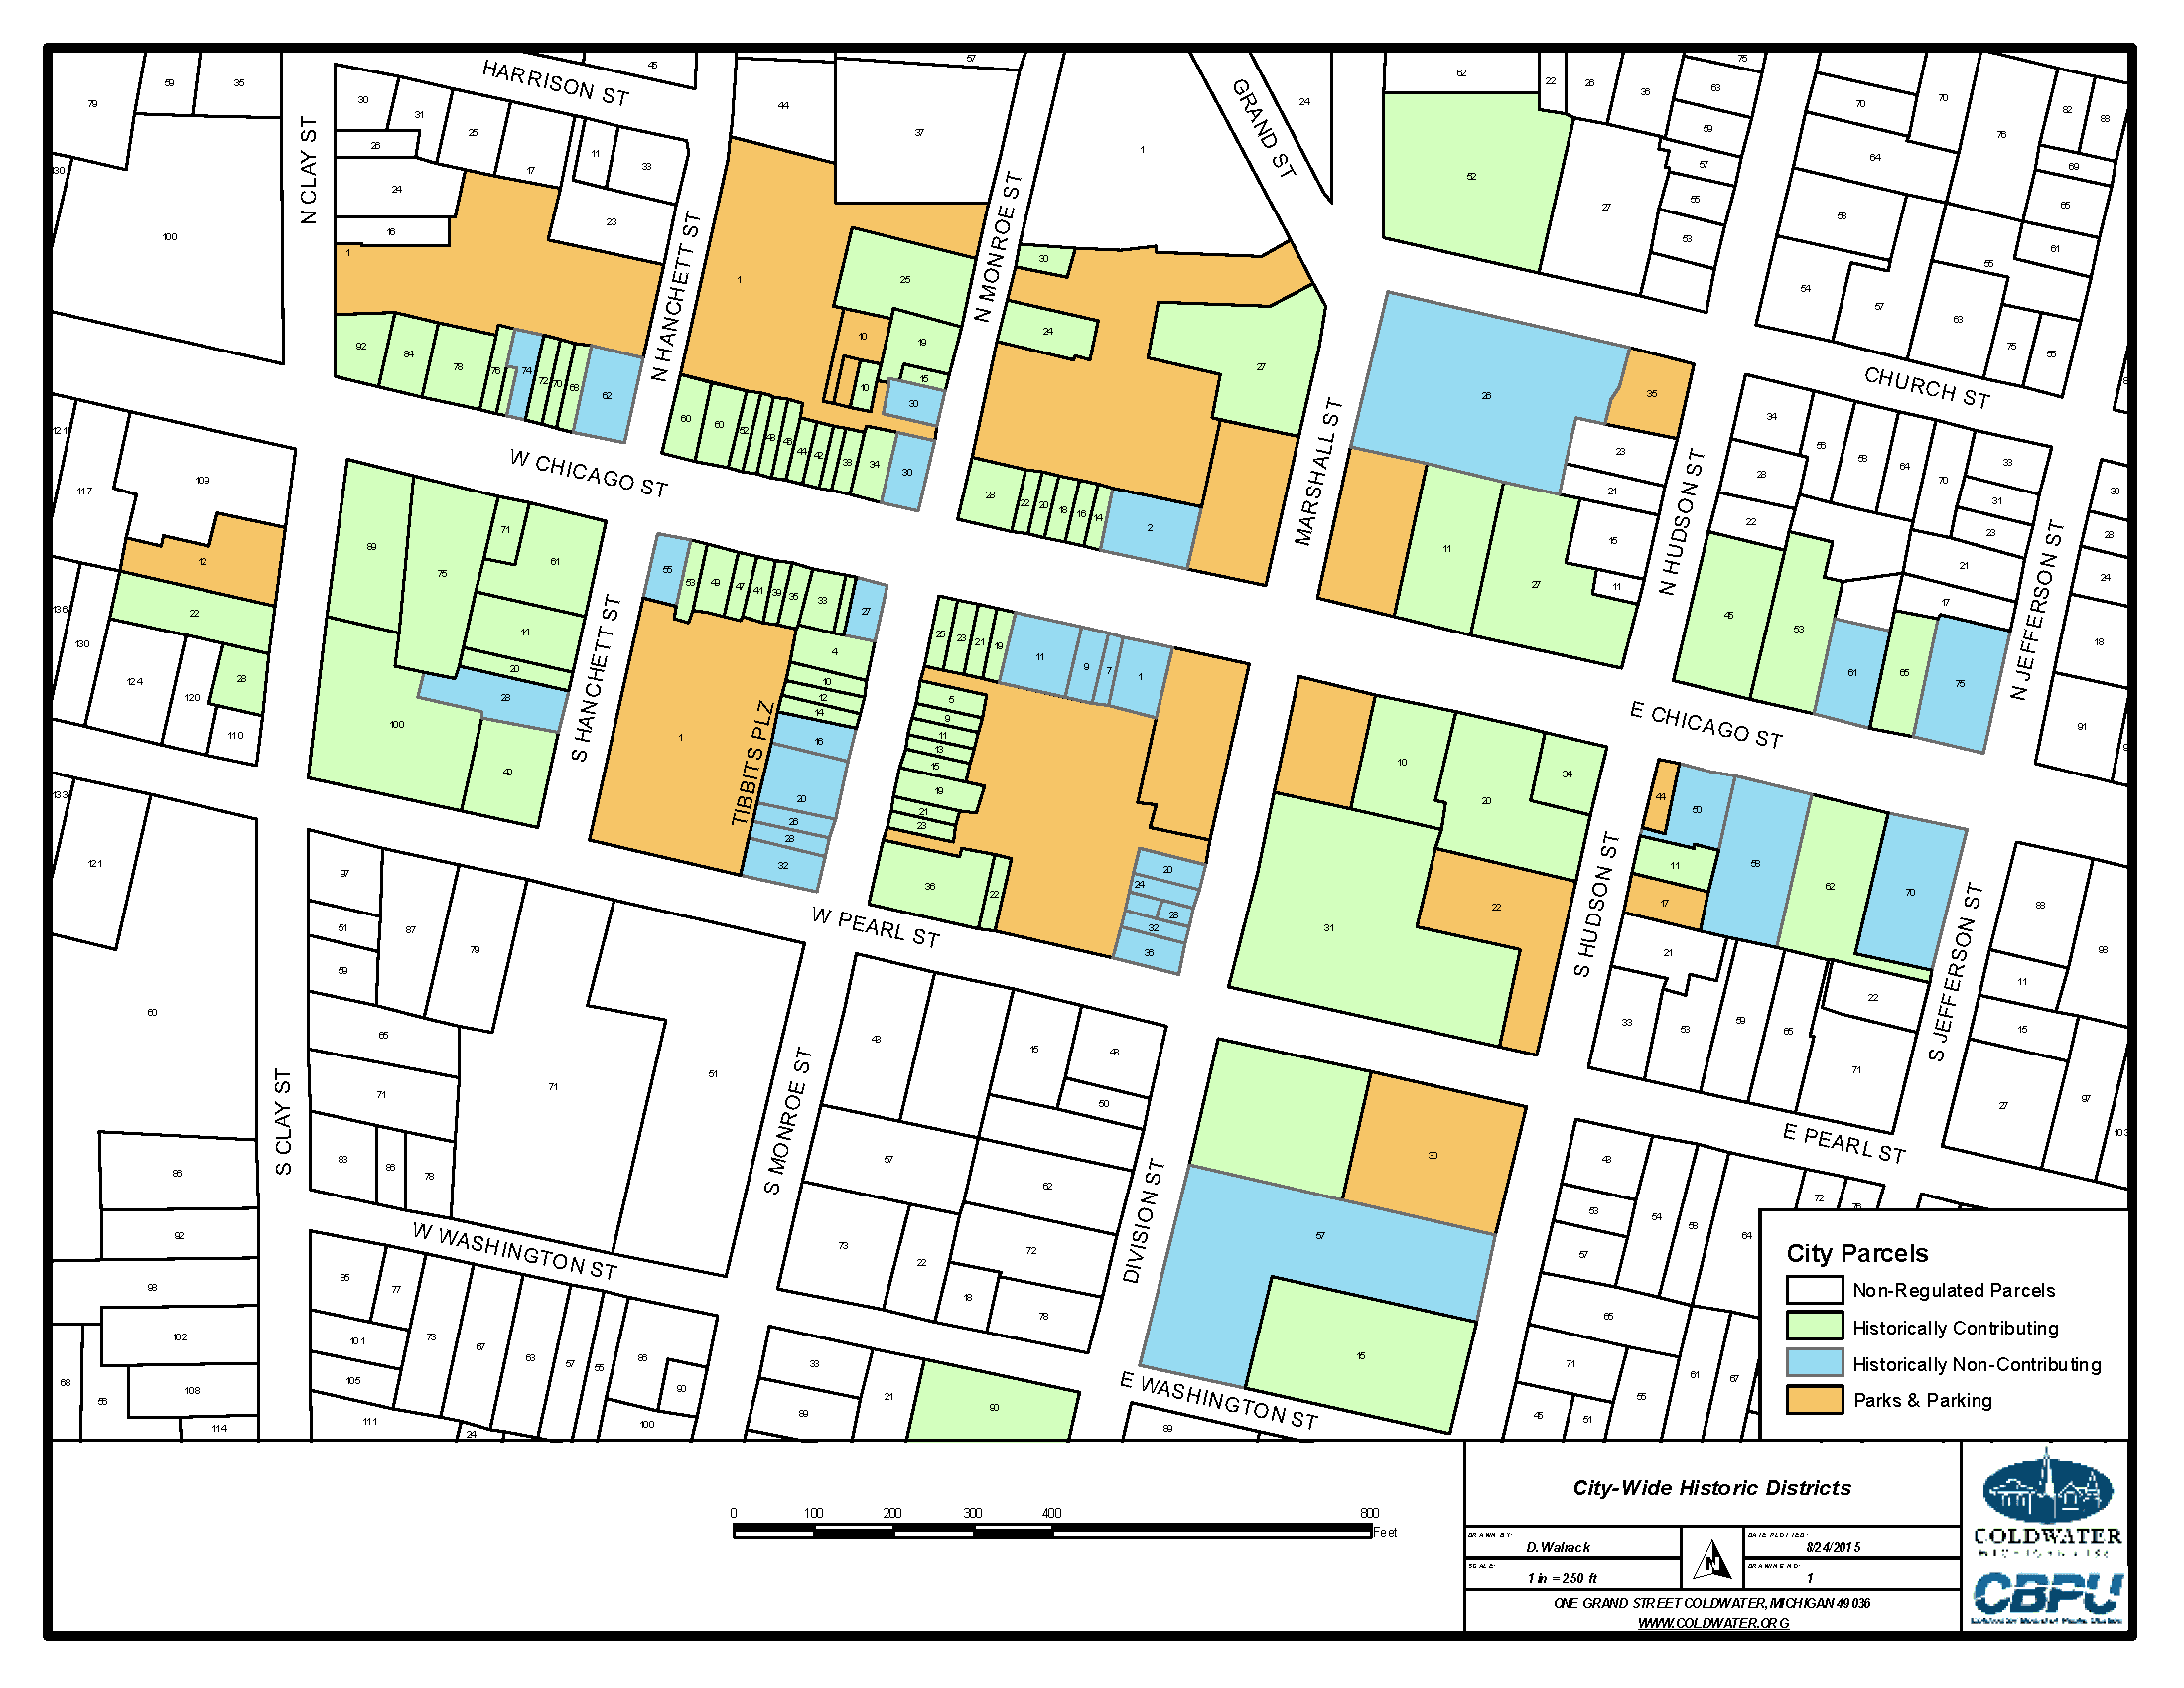 A map showing the Local Historic District